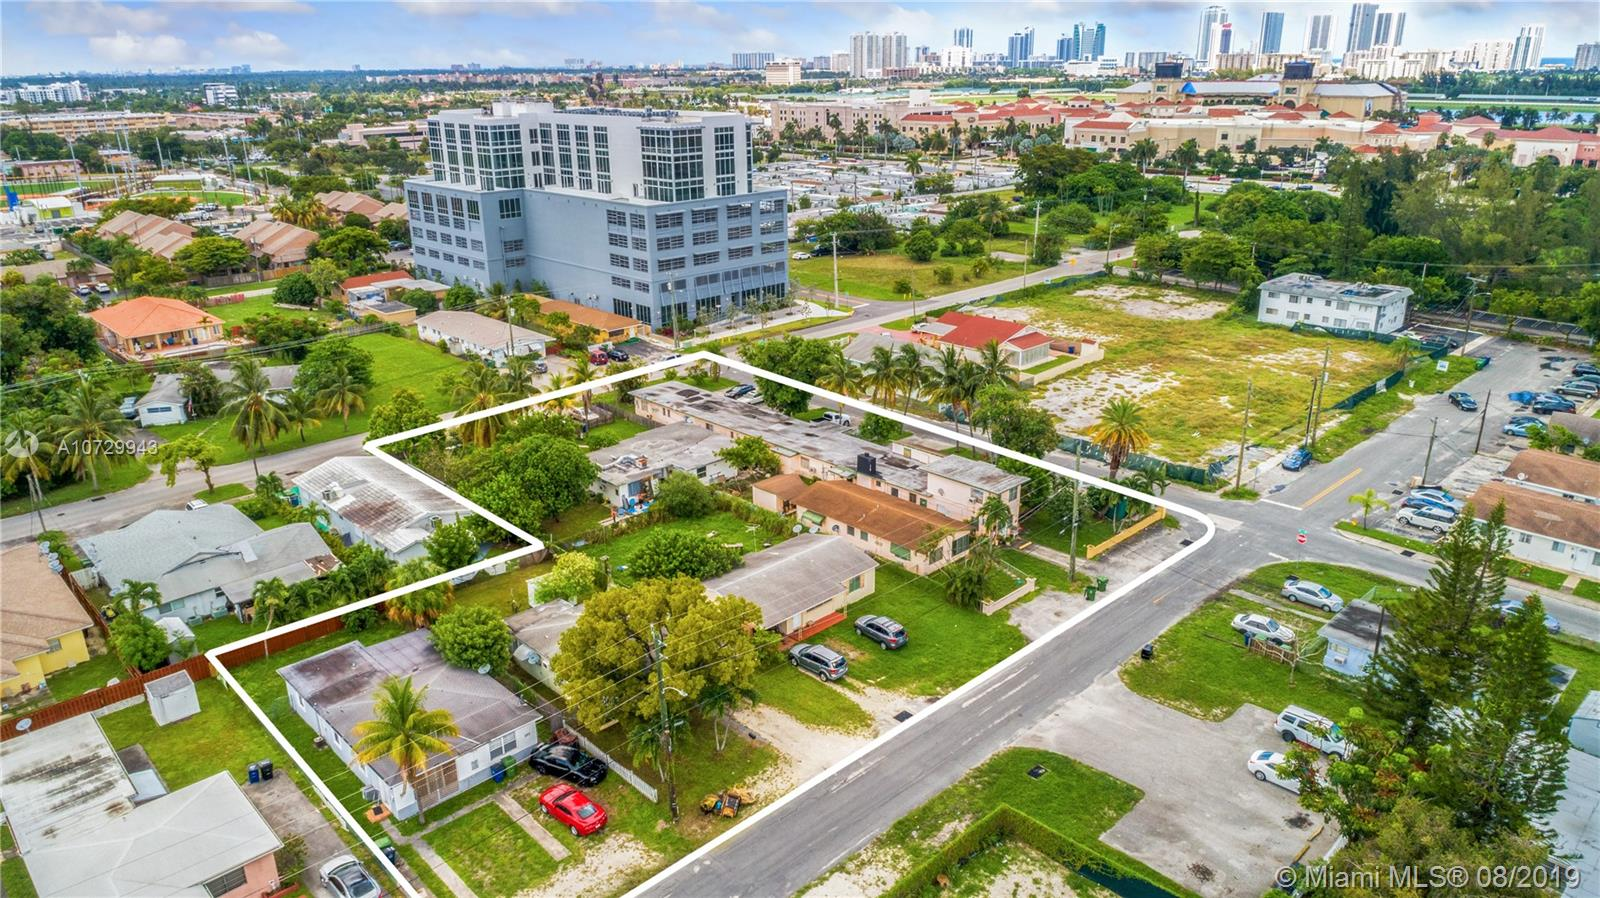 228 SE 9 ST #1-8 For Sale A10729943, FL